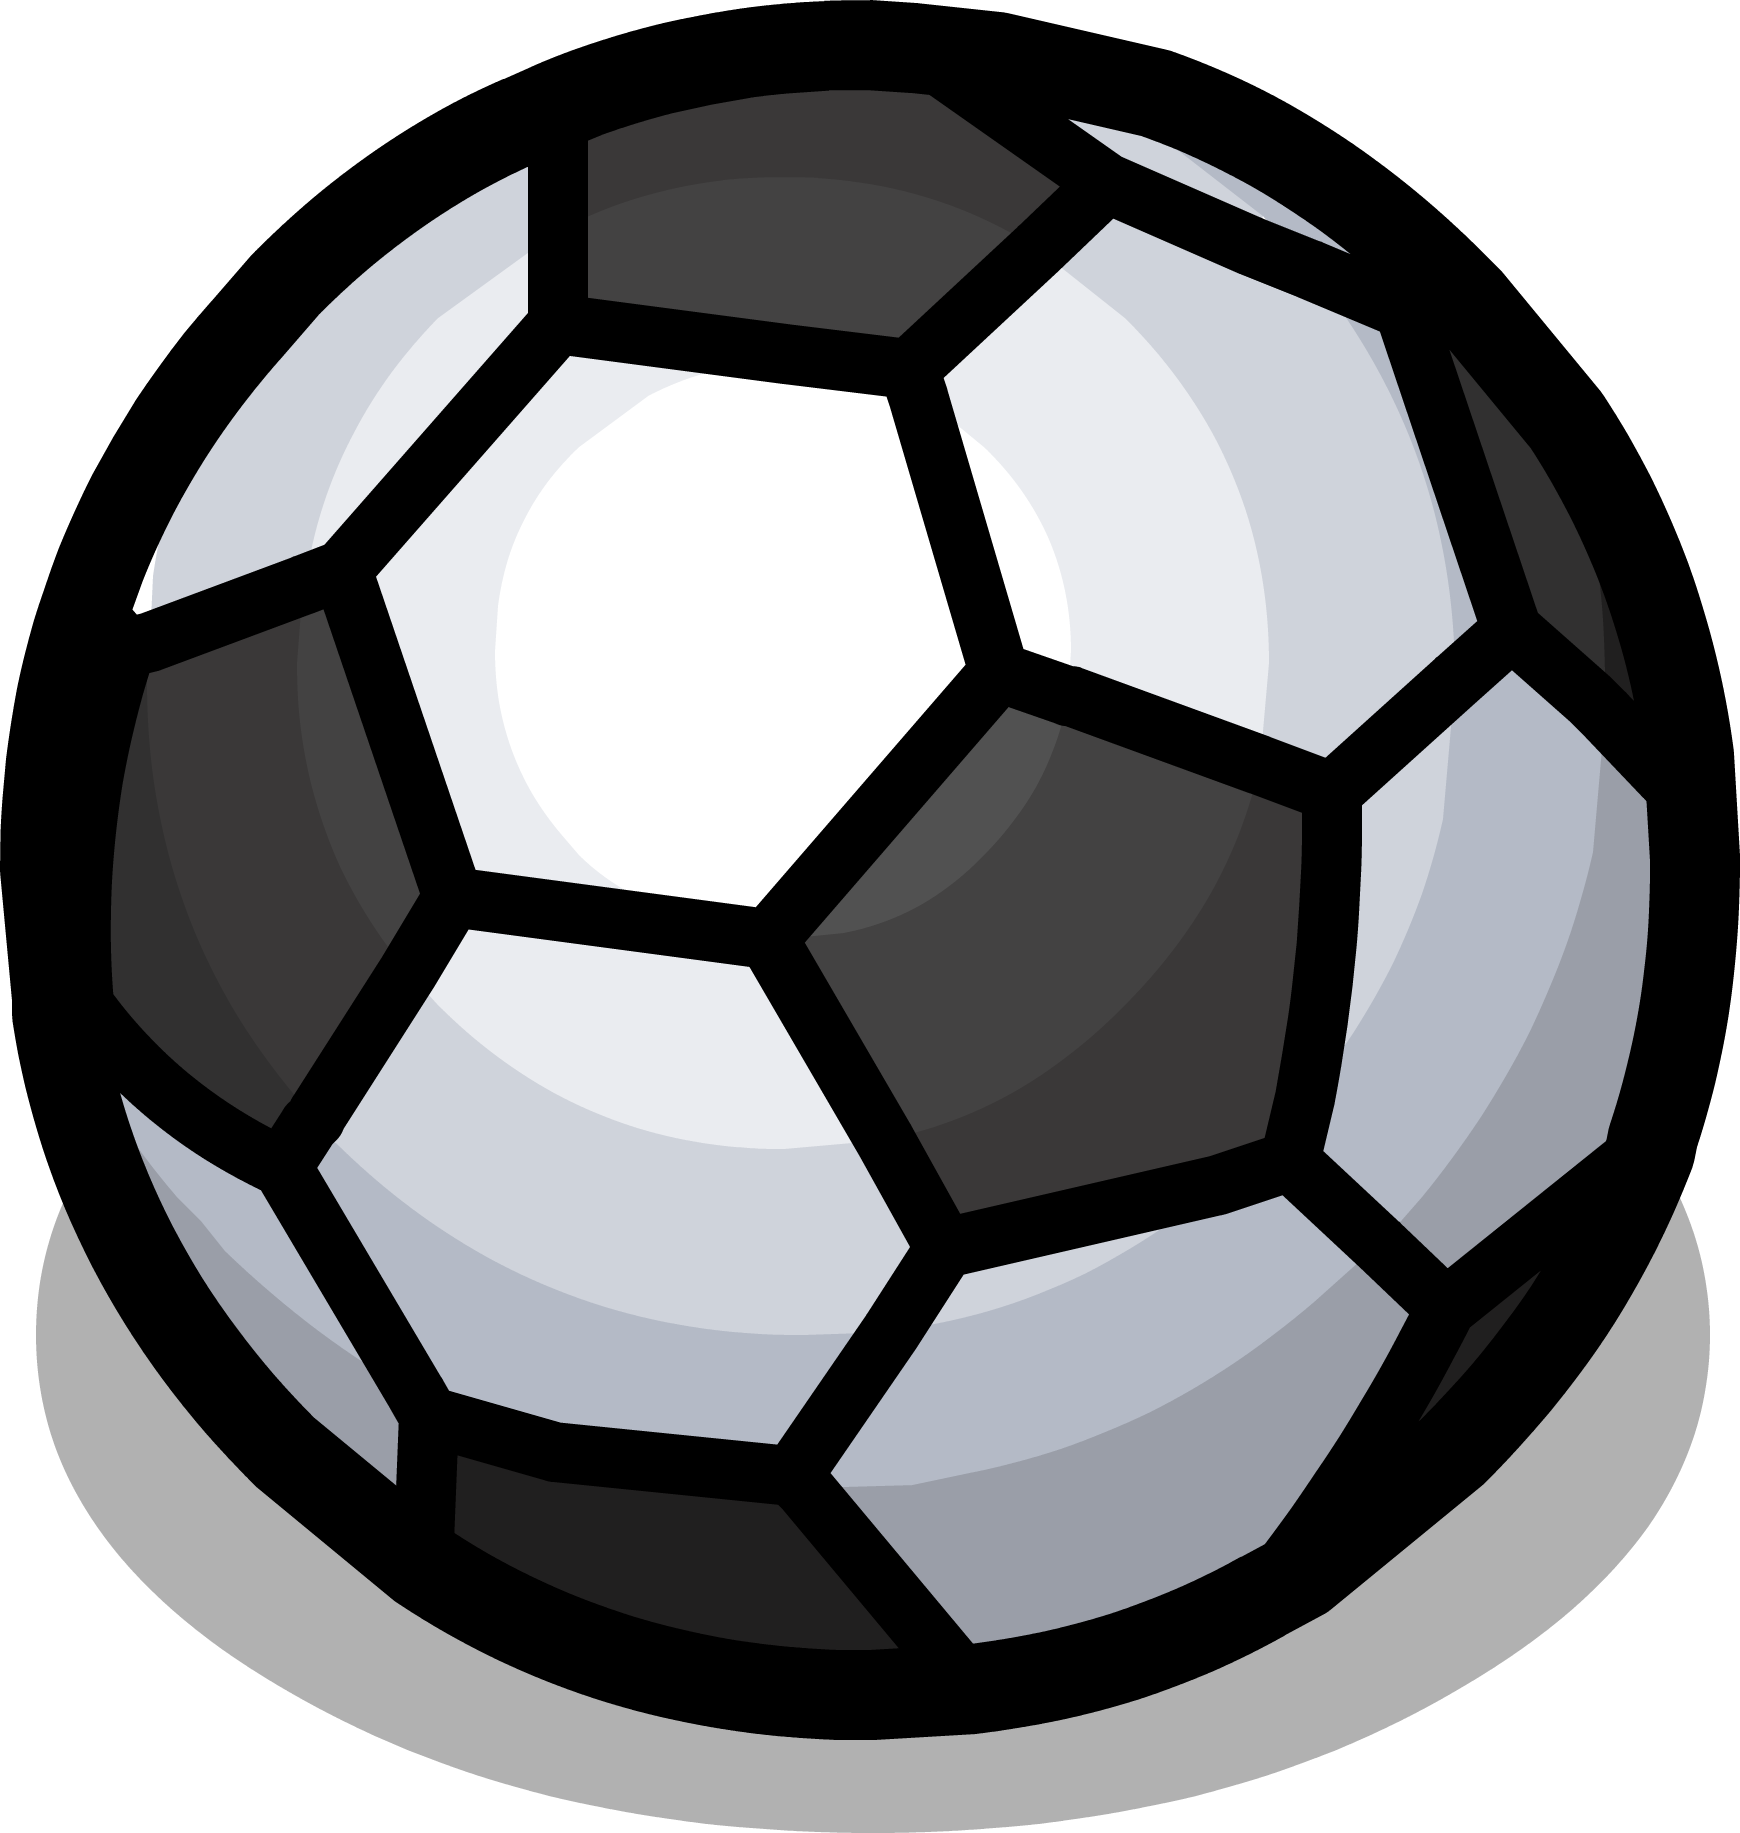 Image multi sprite png. Marbles clipart 9 ball